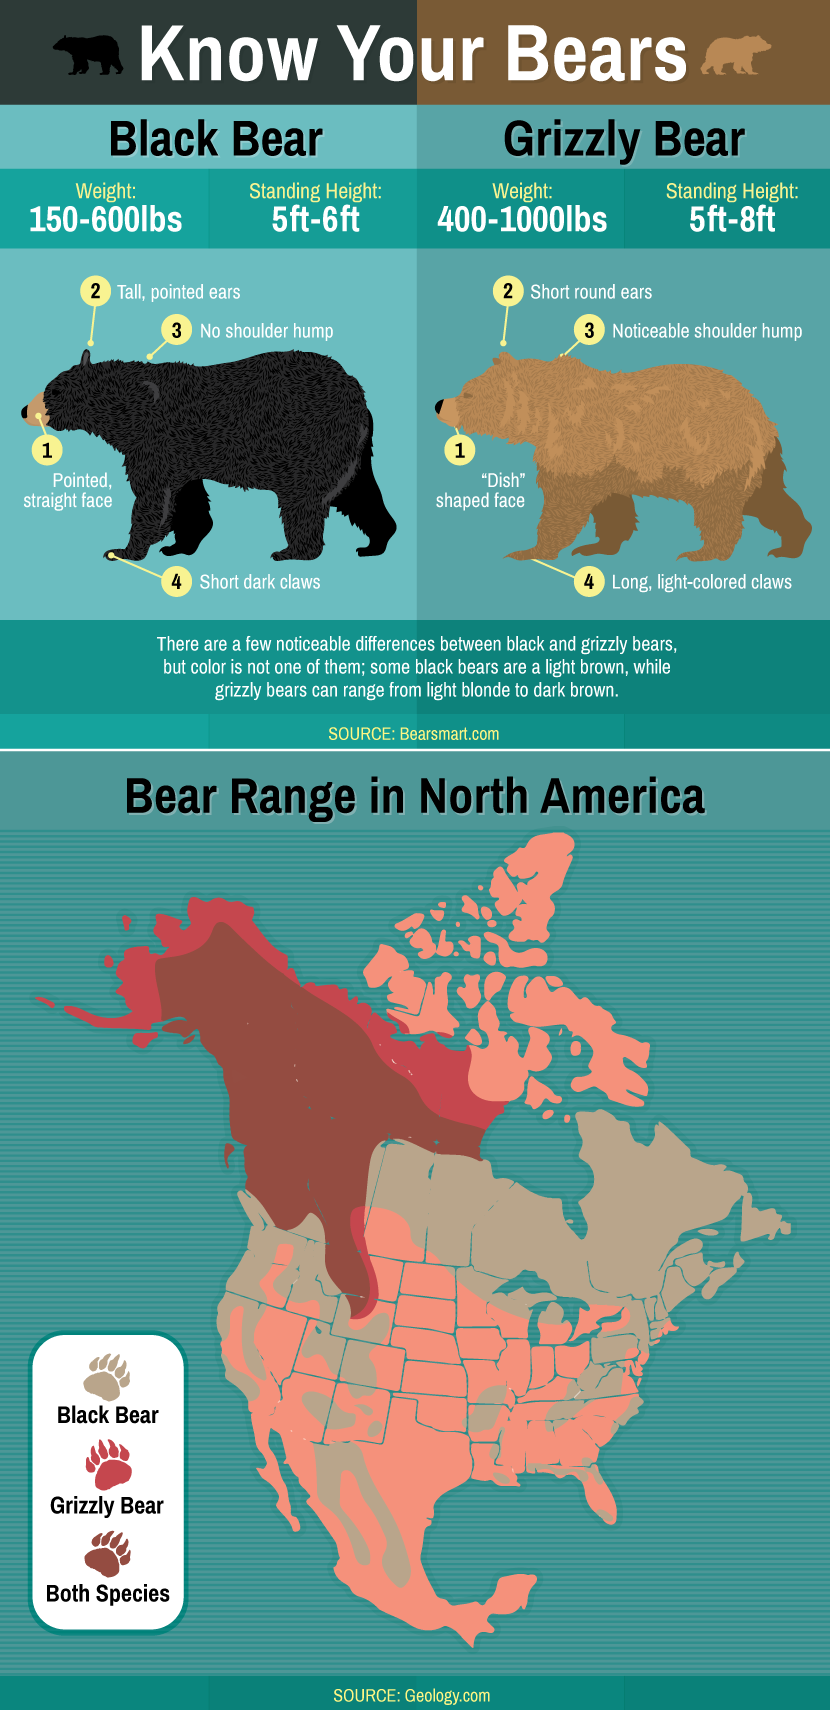 Differences in Bear Species